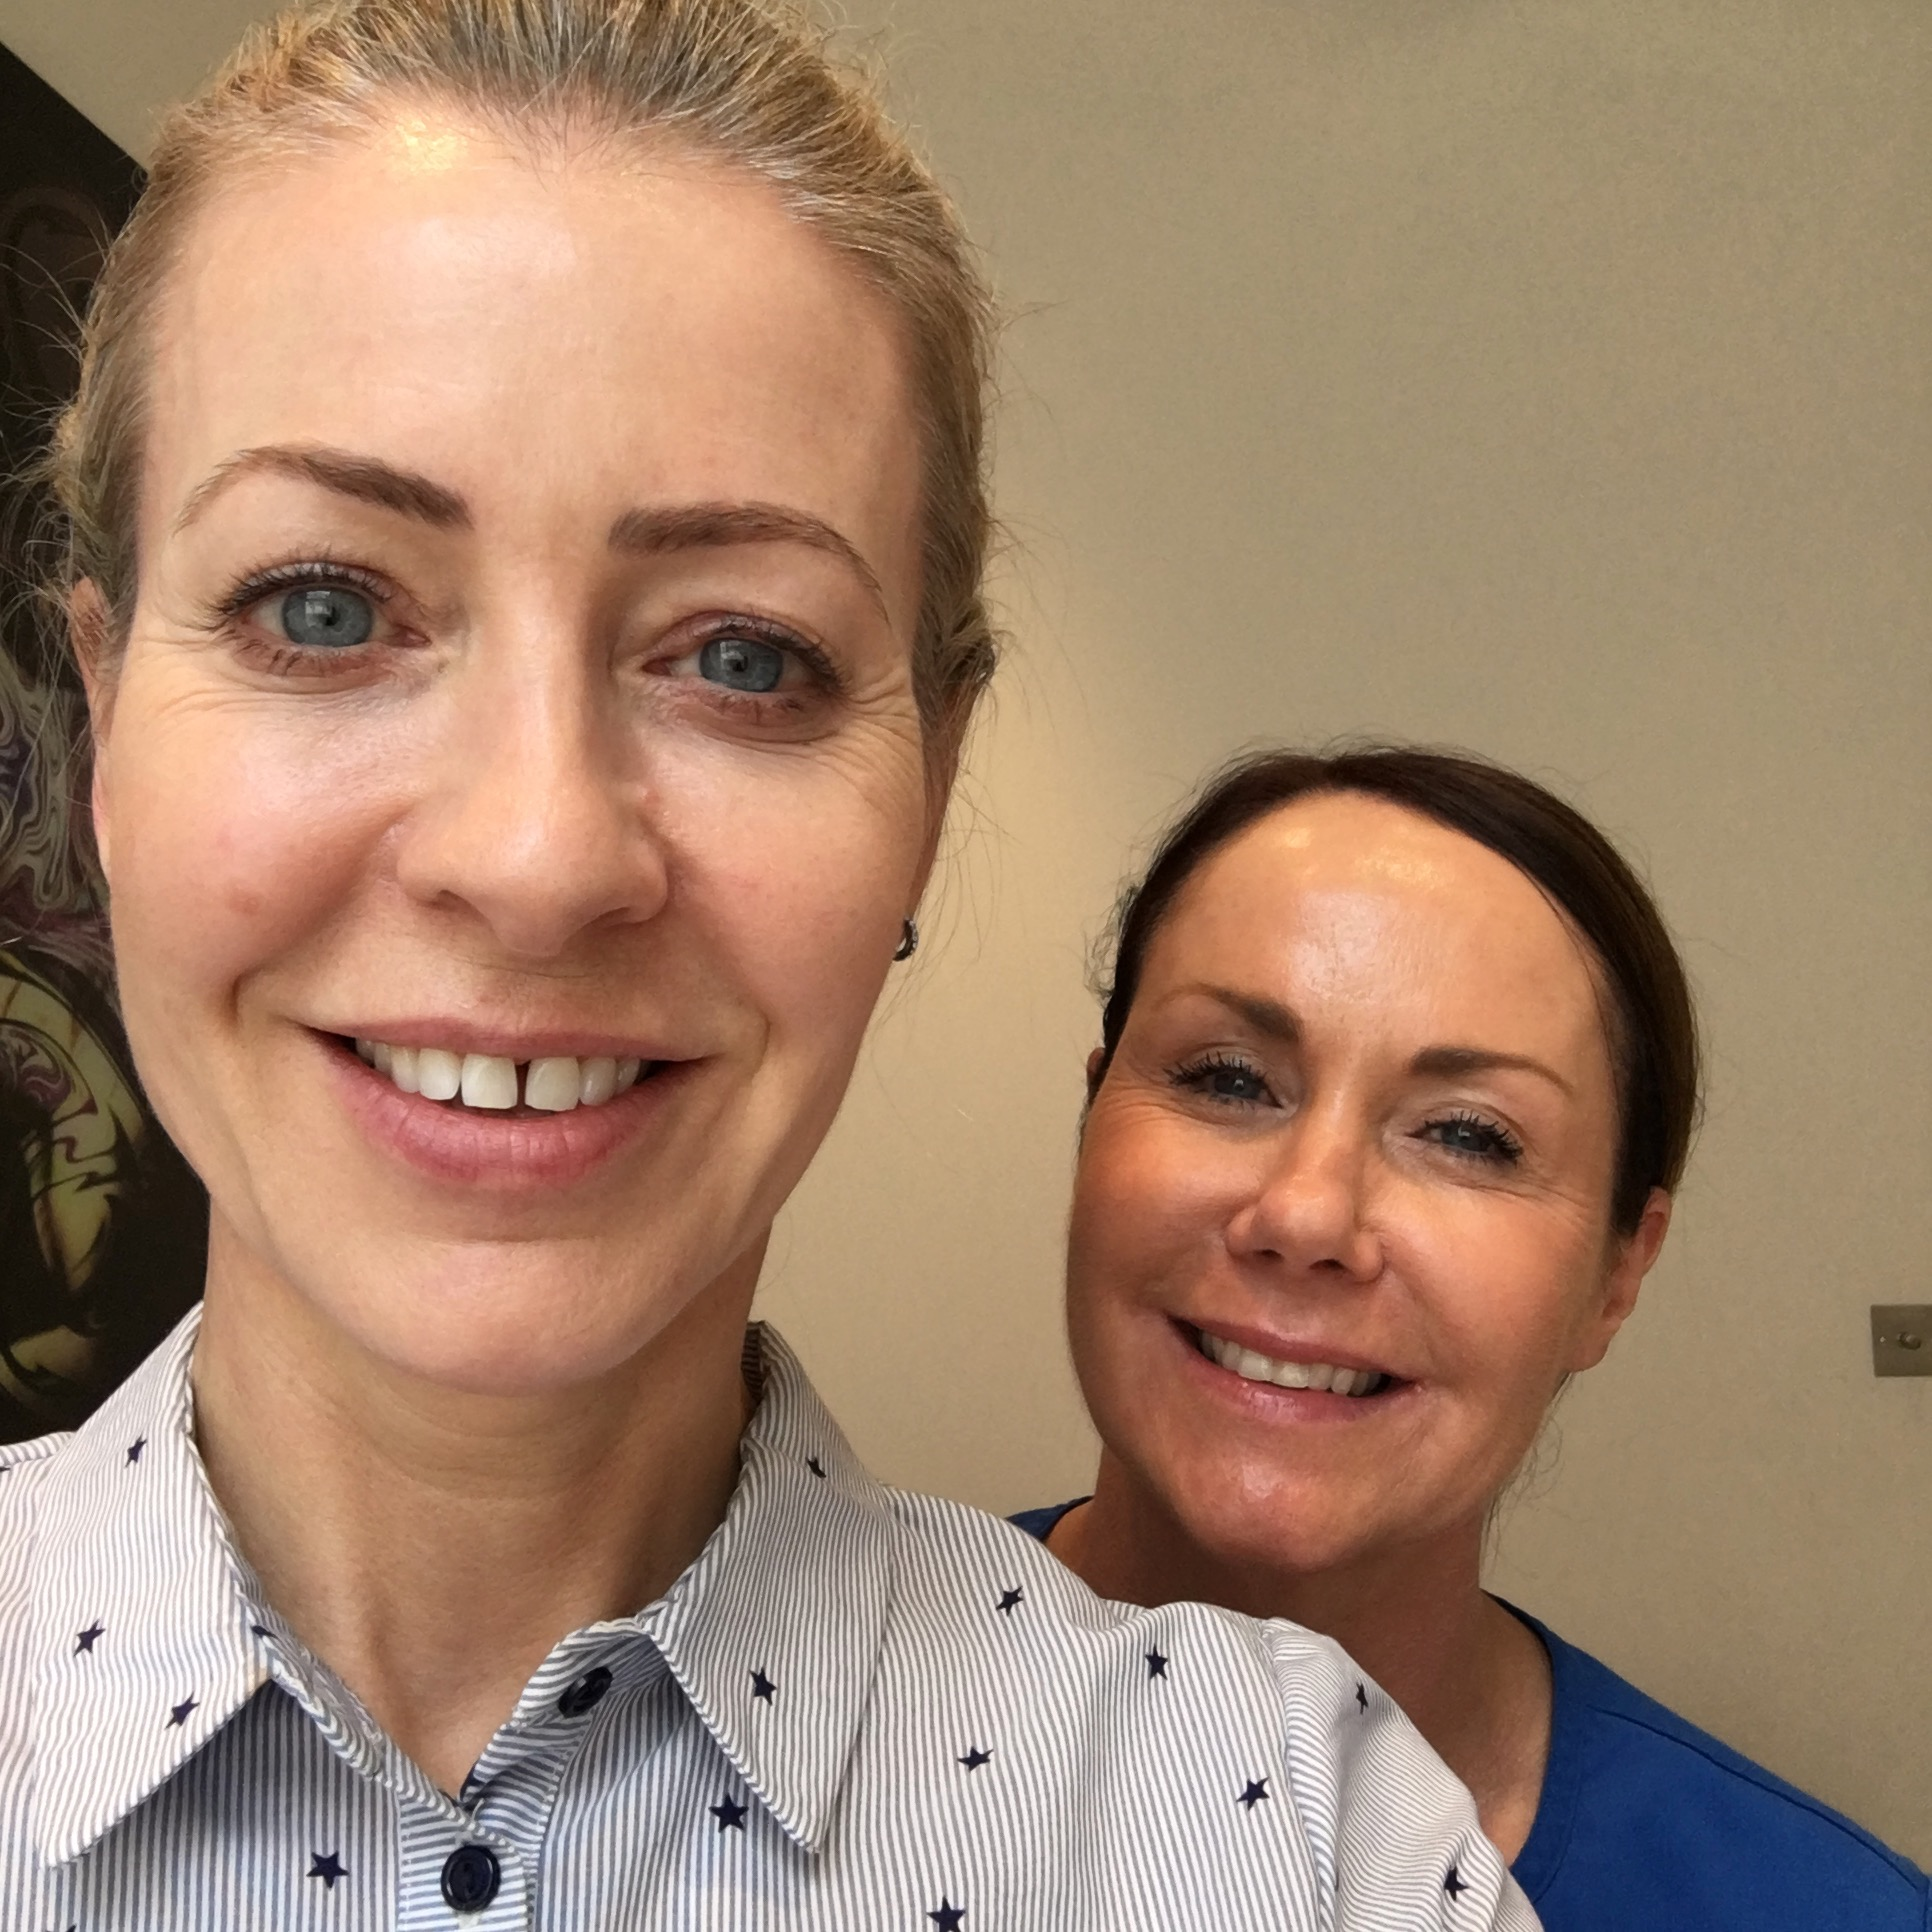 With Esther Loughran, a leading aesthetic nurse who has been doing Ultherapy for years.